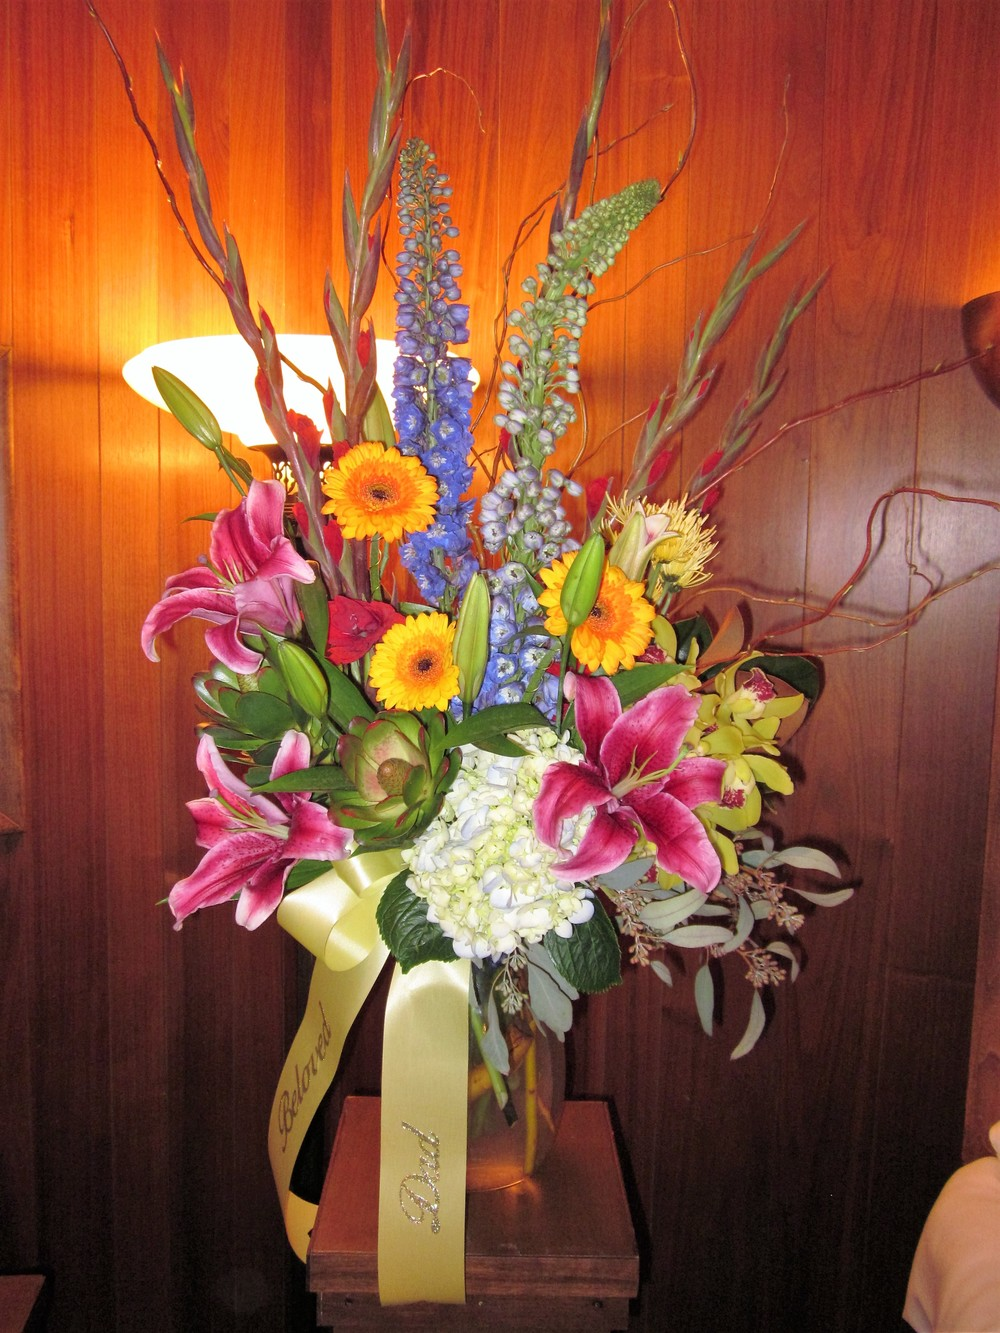 #16 large vase arrangement of bright colored stargazers, gerbera and glads